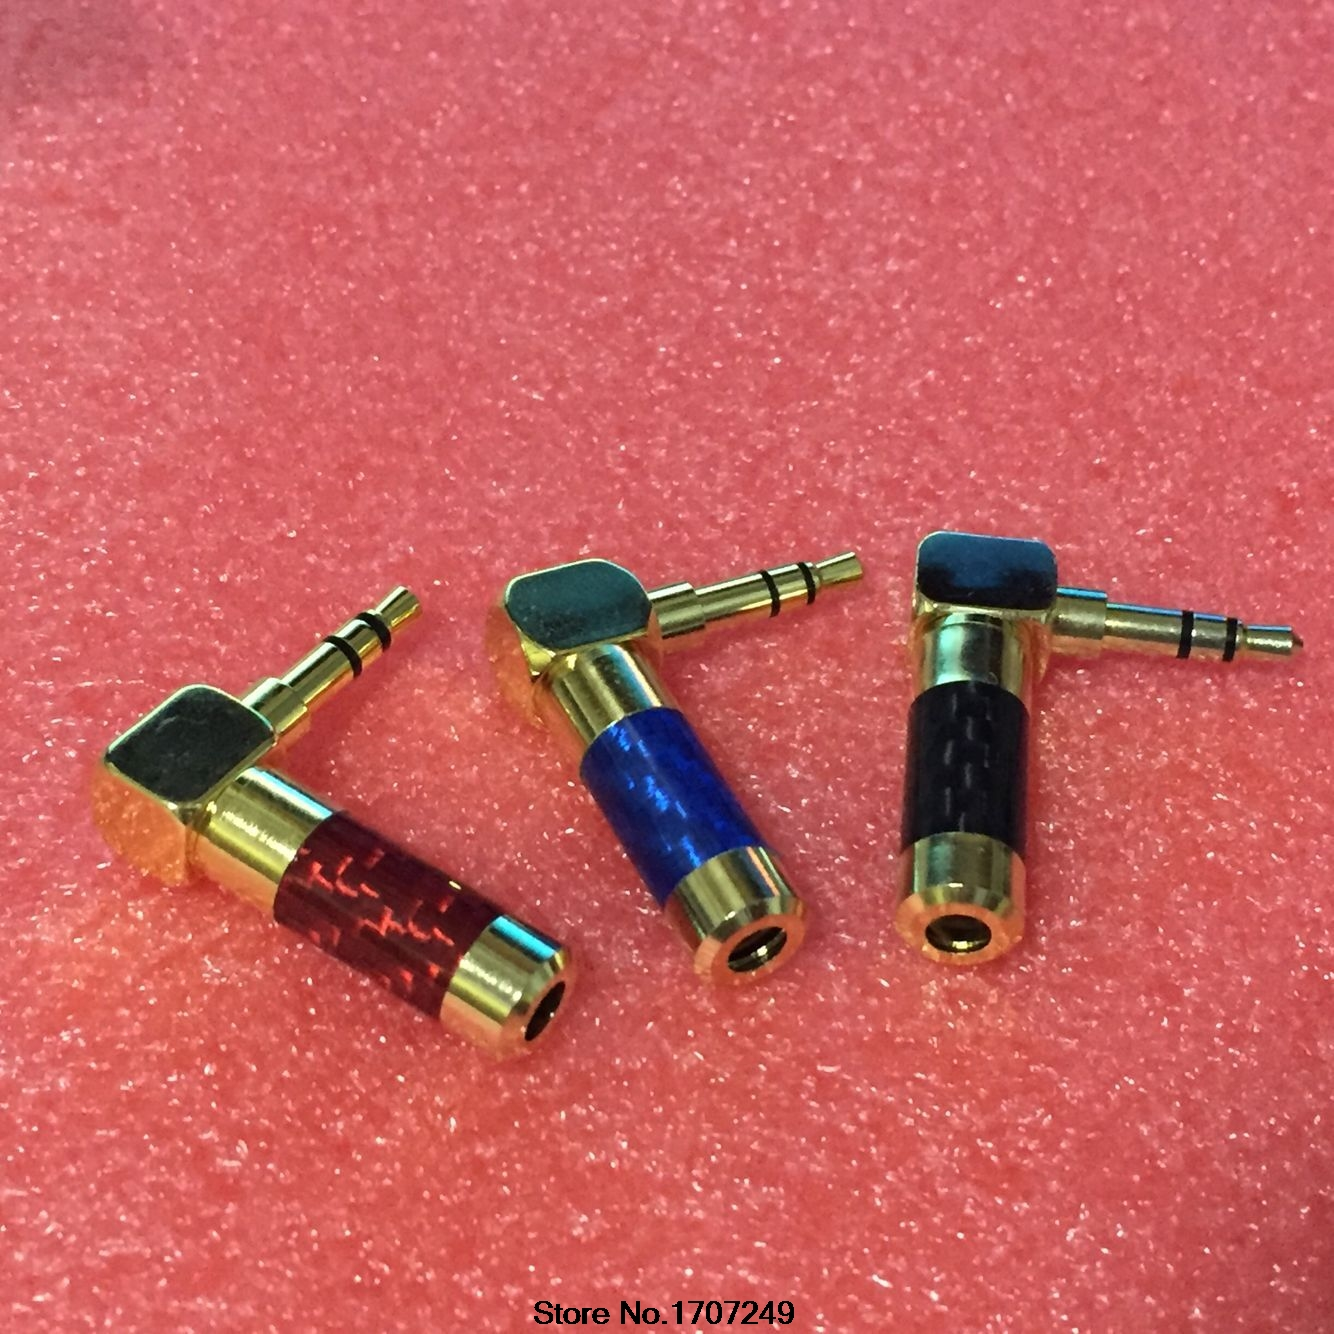 1pcs 24K Gold Plated audio 3.5mm 3 pole jack 90 Degree Headphone Plug Right Angle Stereo Audio Jack Connector for Cable Adapter 6pcs straight router bit set 1 4 shank woodworking cutter 1 4 5 16 3 8 1 2 5 8 3 4 diameter for turning lathe machine